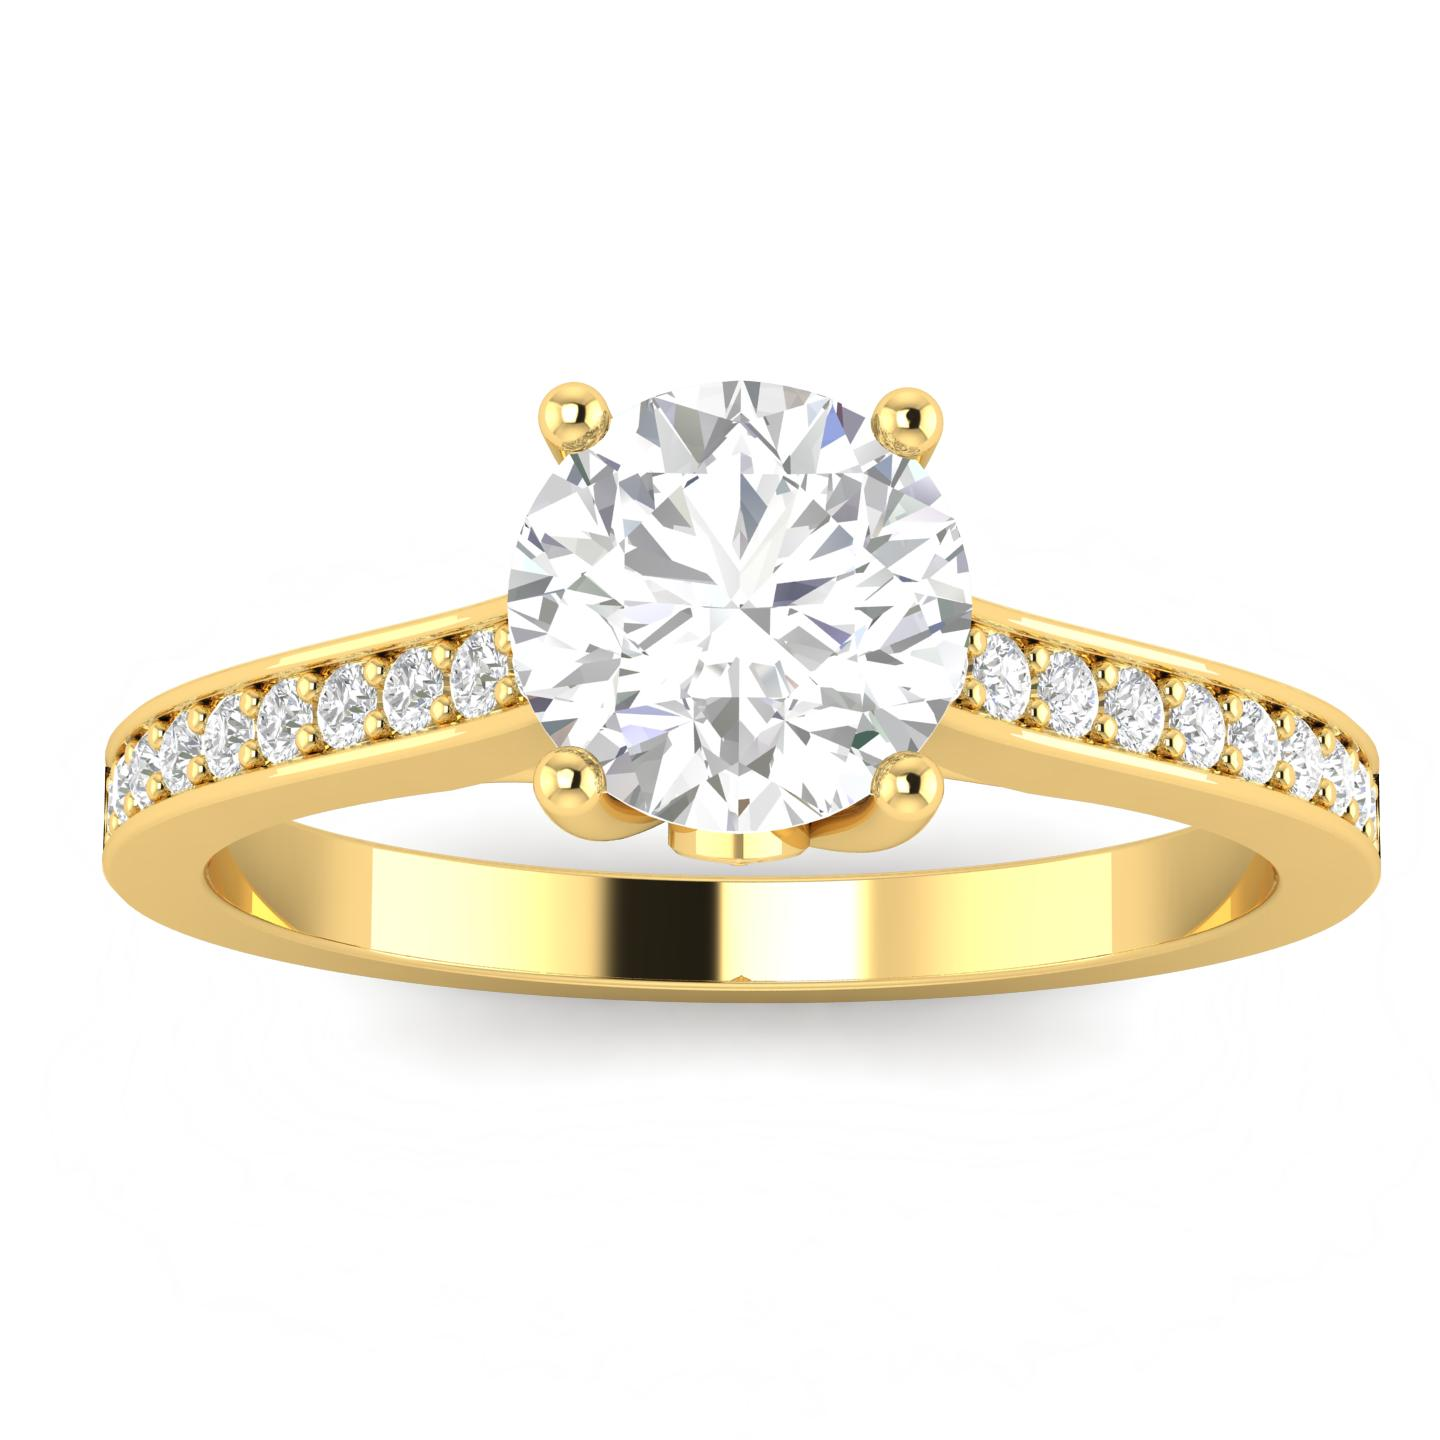 3 4ctw Diamond Engagement Ring in 10k Yellow Gold by Sk Jewel,Inc